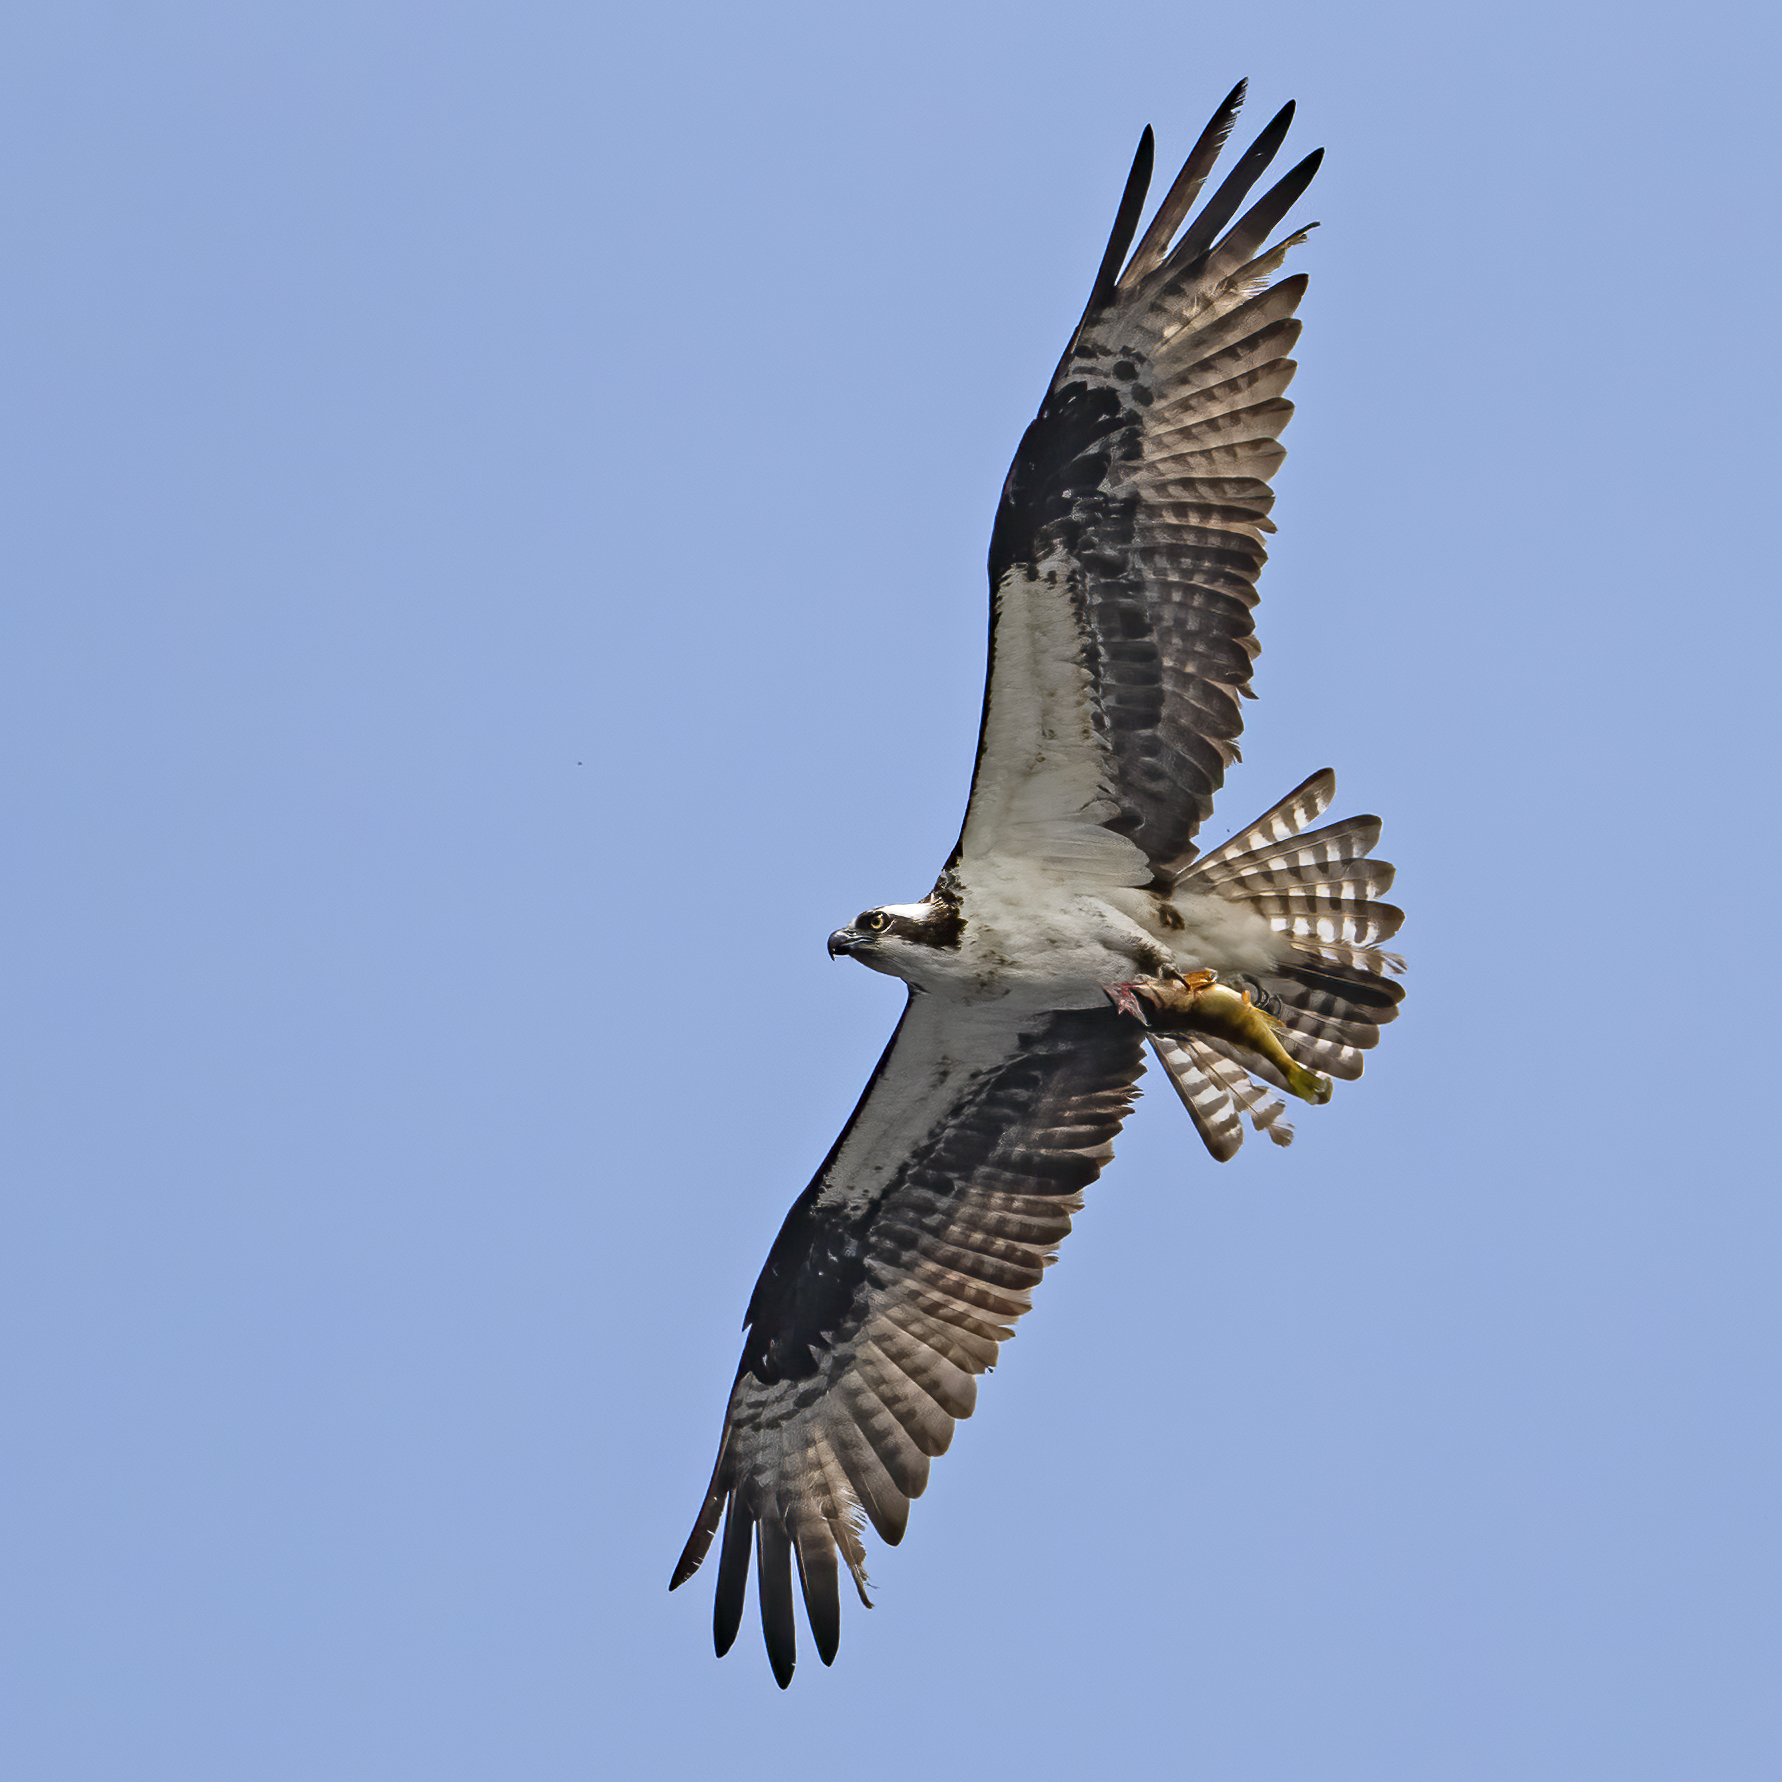 Osprey in flight on a blue sky background, grasping a yellow perch fish, by Larry Master